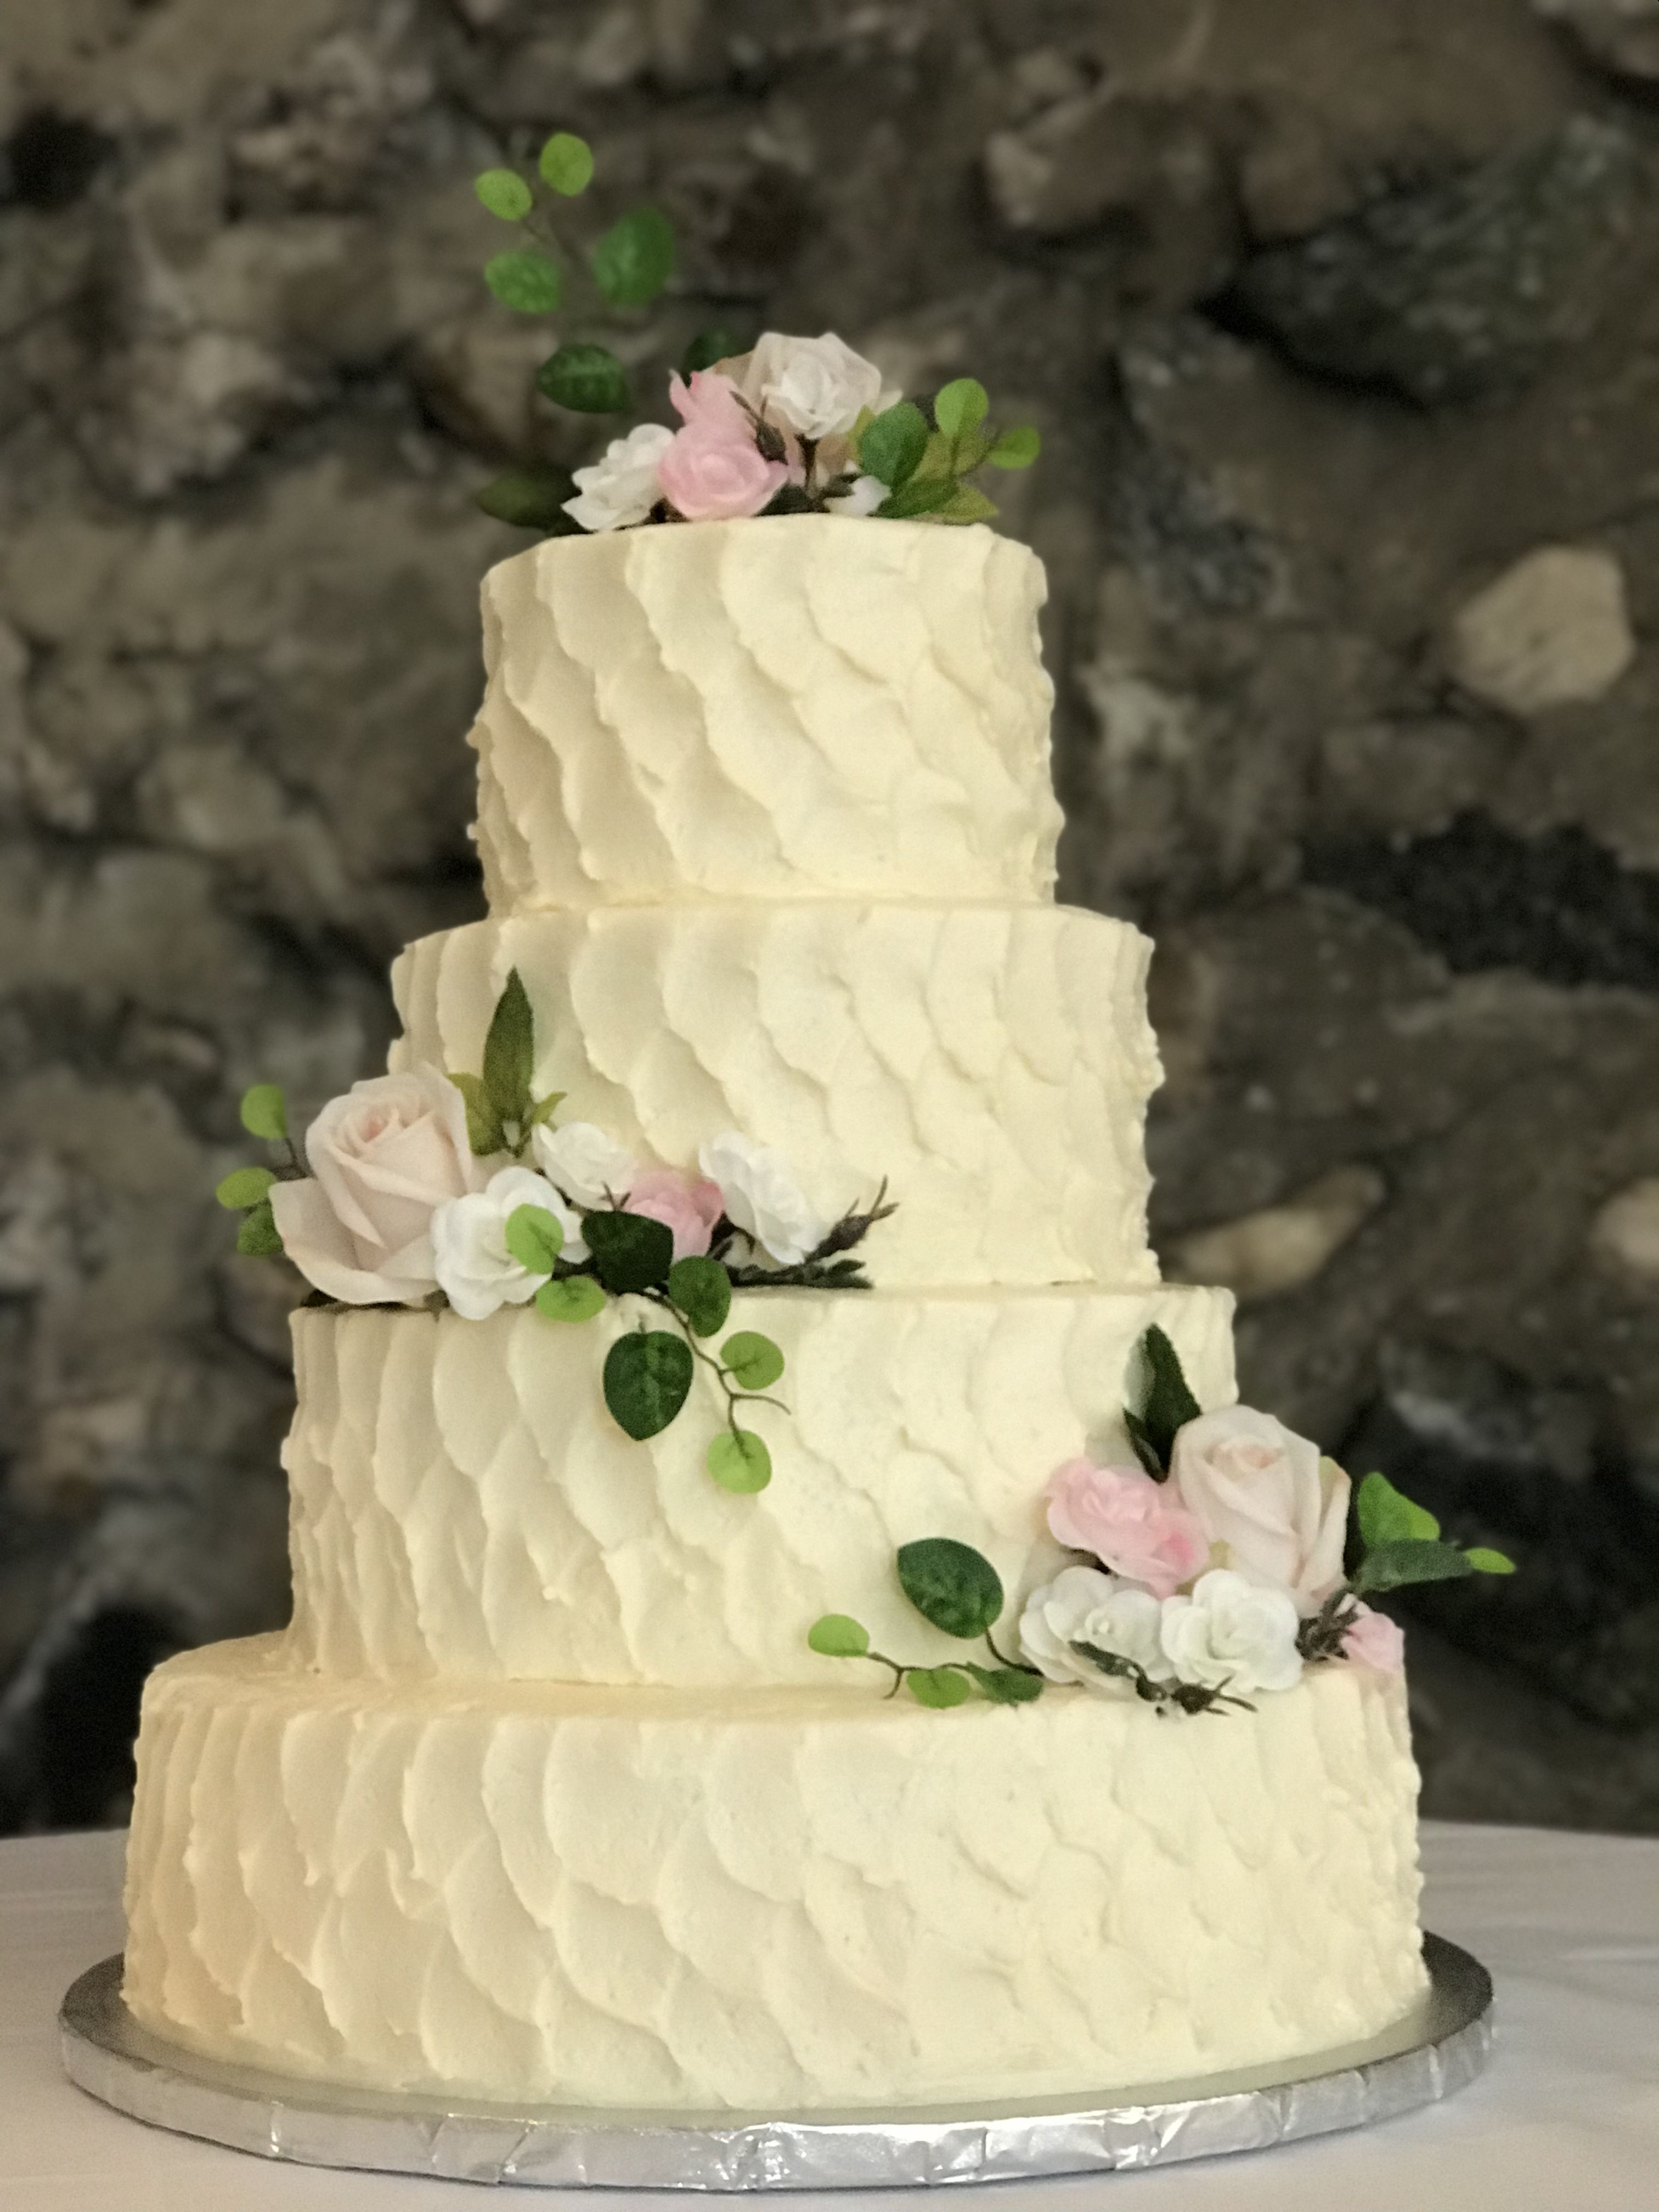 Pin by Tiffany Young on Wedding Cakes | Pinterest | Wedding cake ...